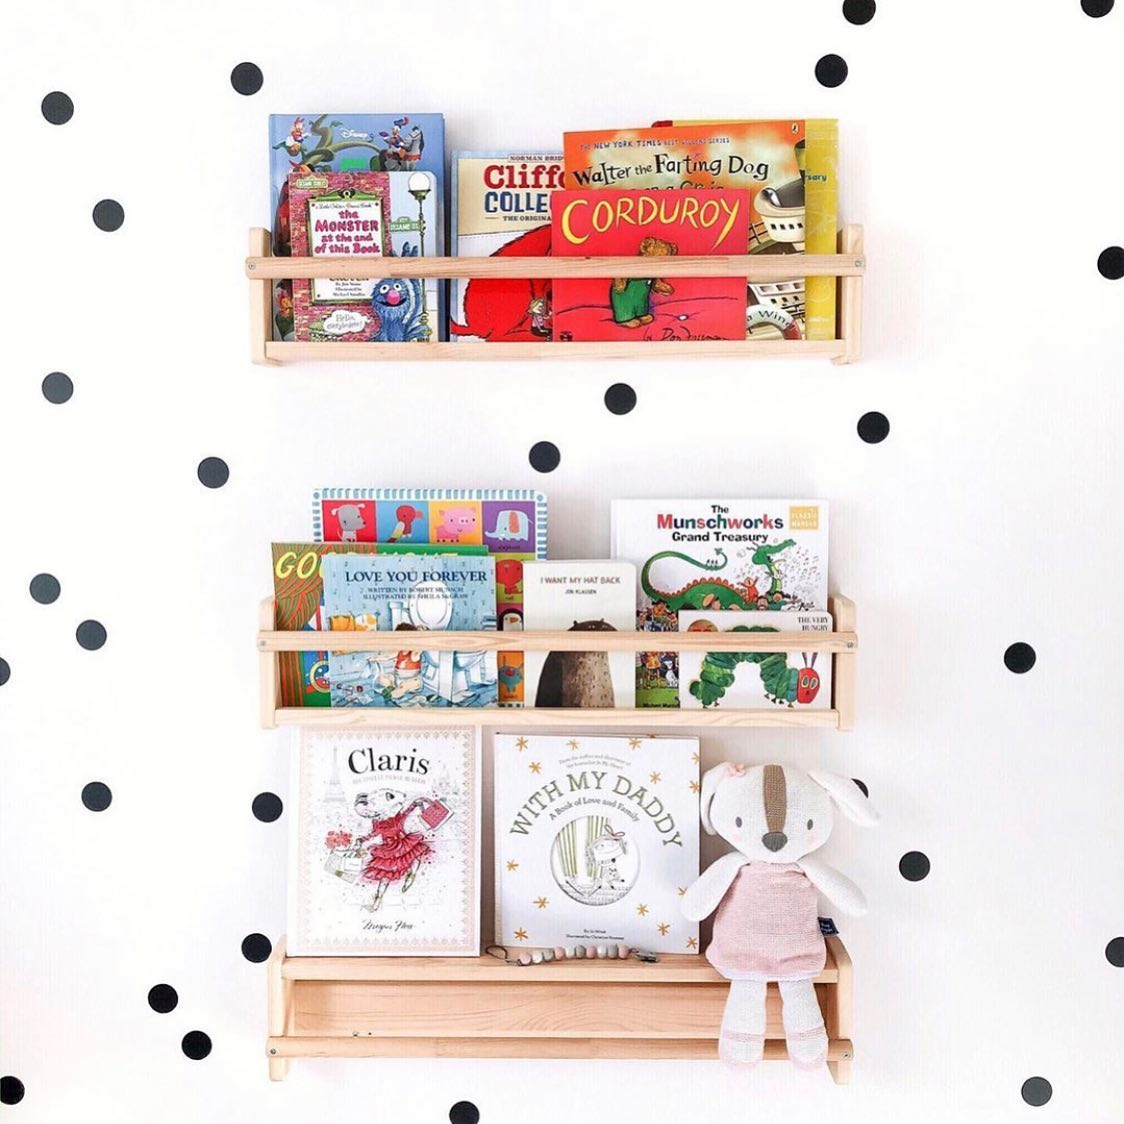 @indigobabyofficial instagram post: What's on your shelf this Father's Day? Give the gift of storytime with books baby and dad will cherish reading together...